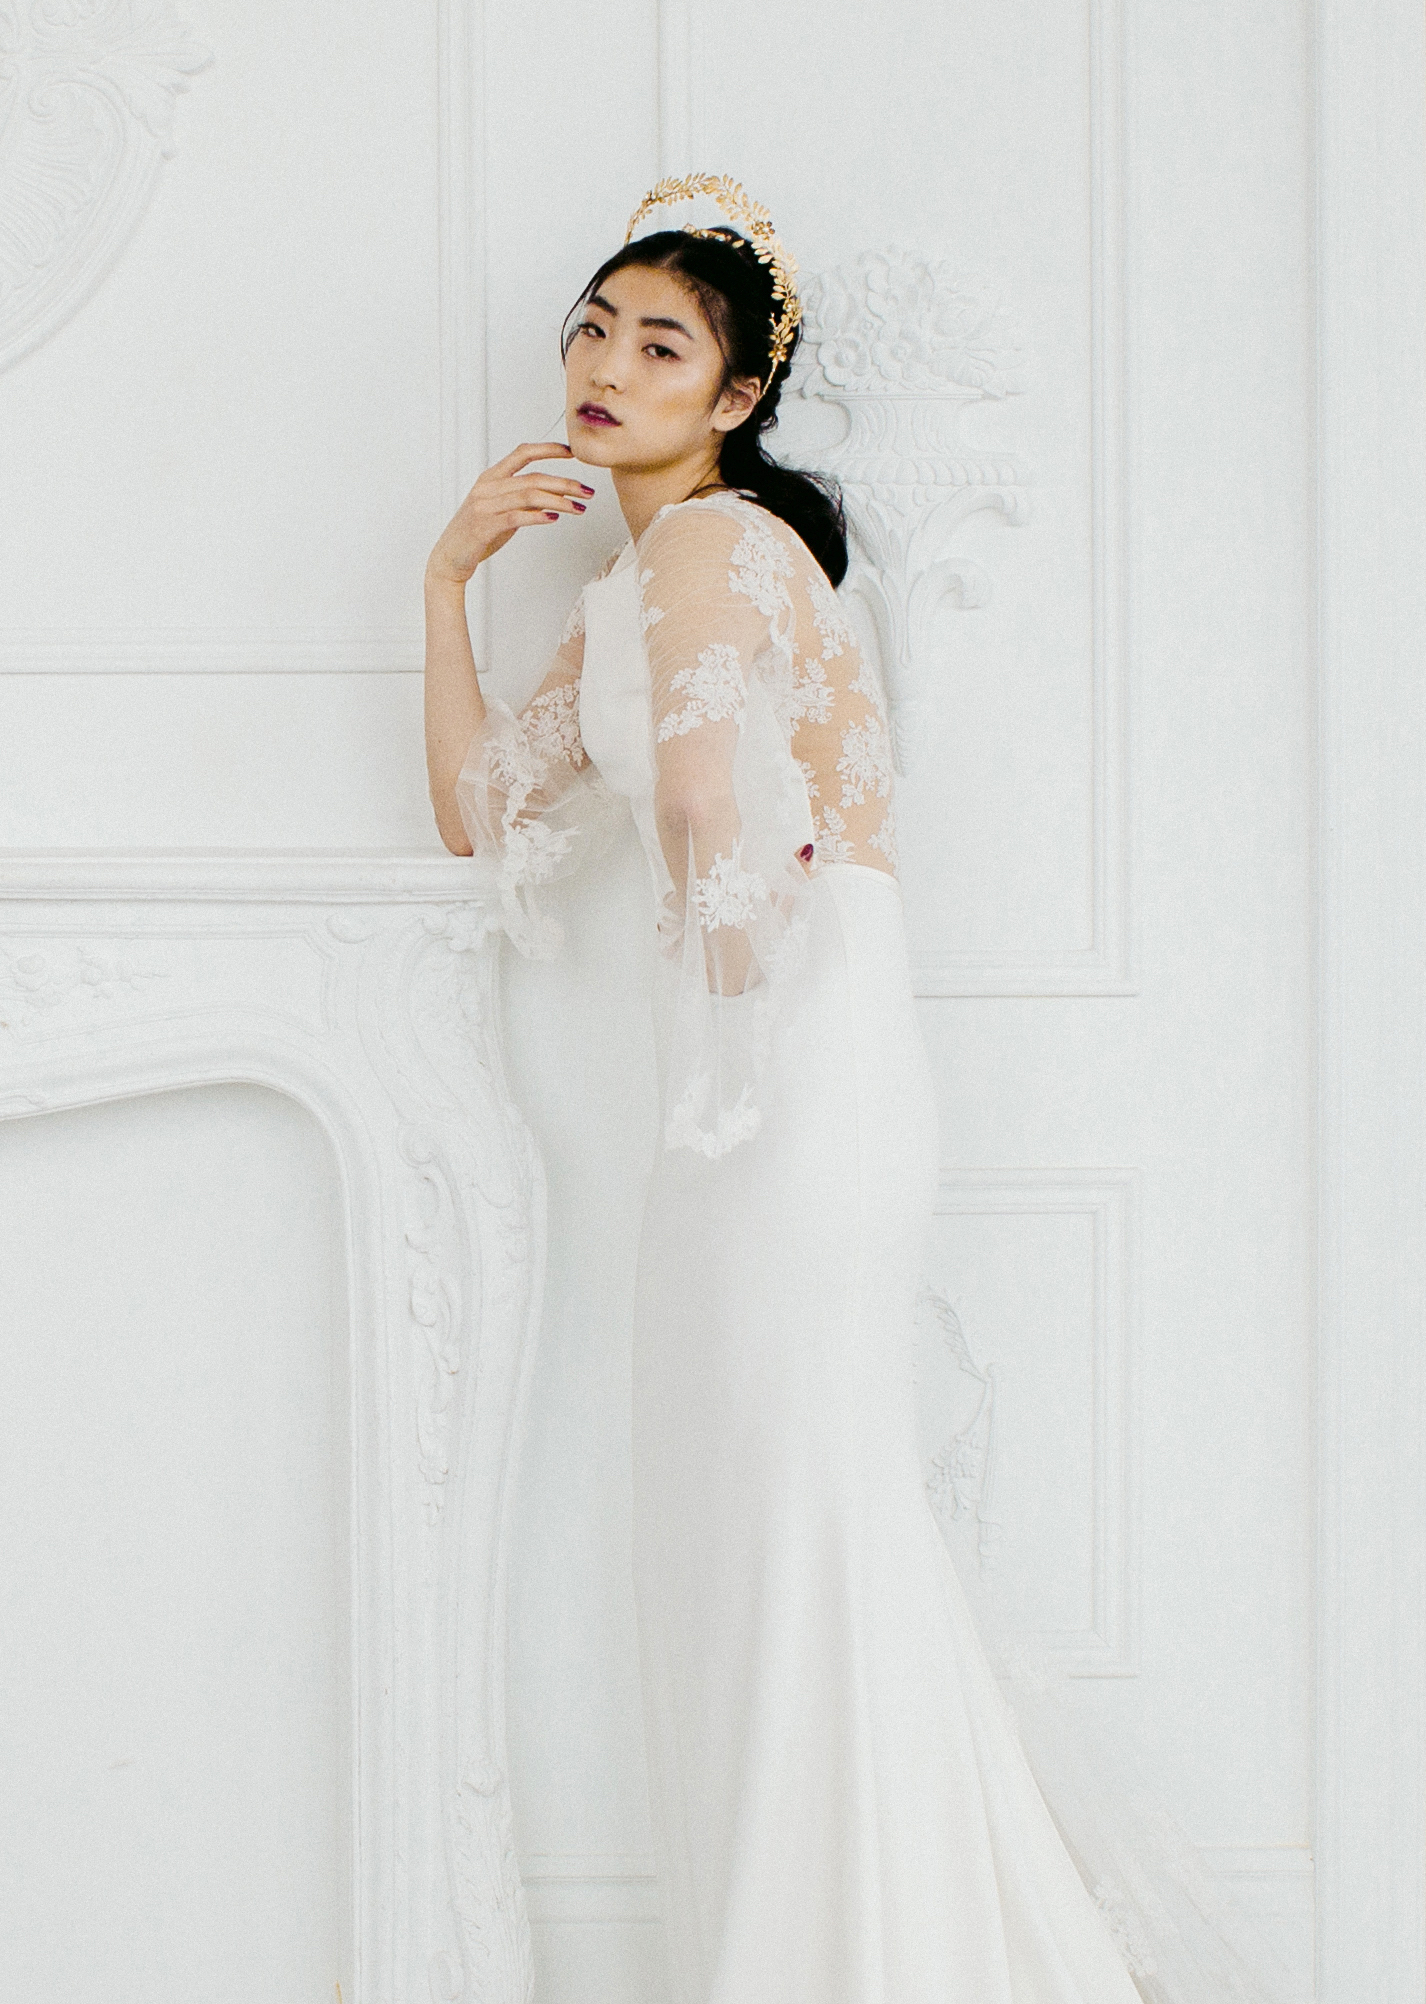 The Loved One - MODERN HEIRLOOMS We are makers and curators of exquisite accessories. We believe in individuality, beauty, and above all, love.Address: 302 Carlaw Ave, Suite 102, TorontoEmail: antonia@thelovedone.caContact: Antonia Akai-CasuccioPhone: (647) 629-4418Website: www.thelovedone.cainstagram ~ facebook ~ twitter ~ pinterest